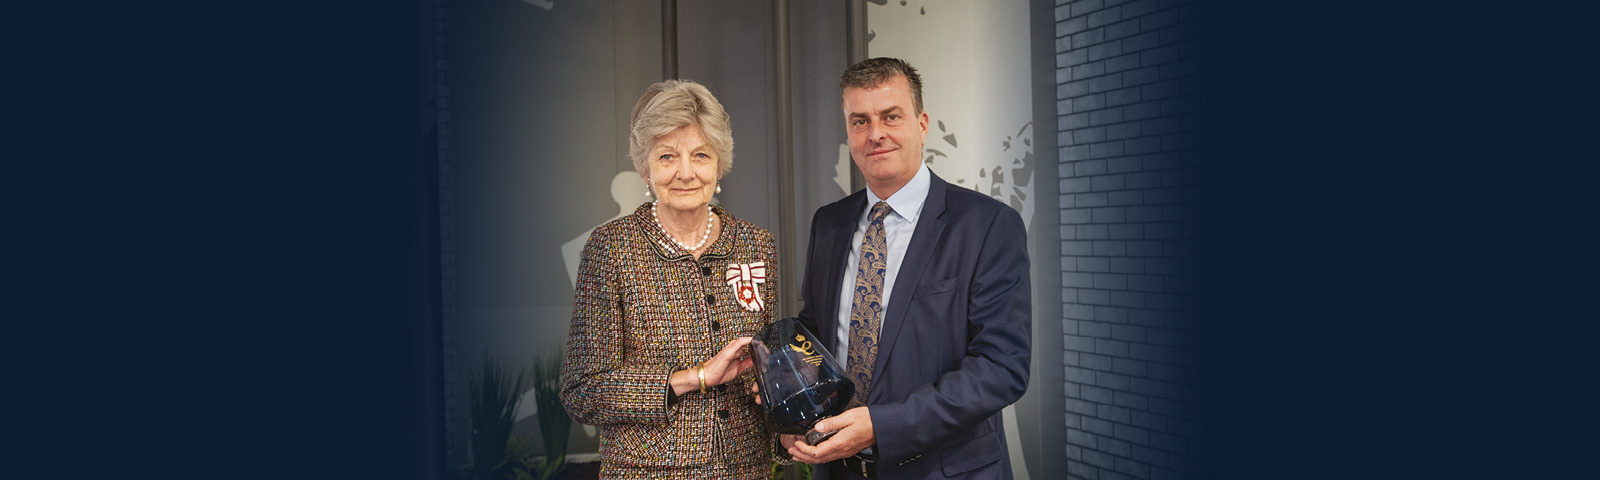 Thorlux Presented with Queen's Award for Enterprise in Innovation